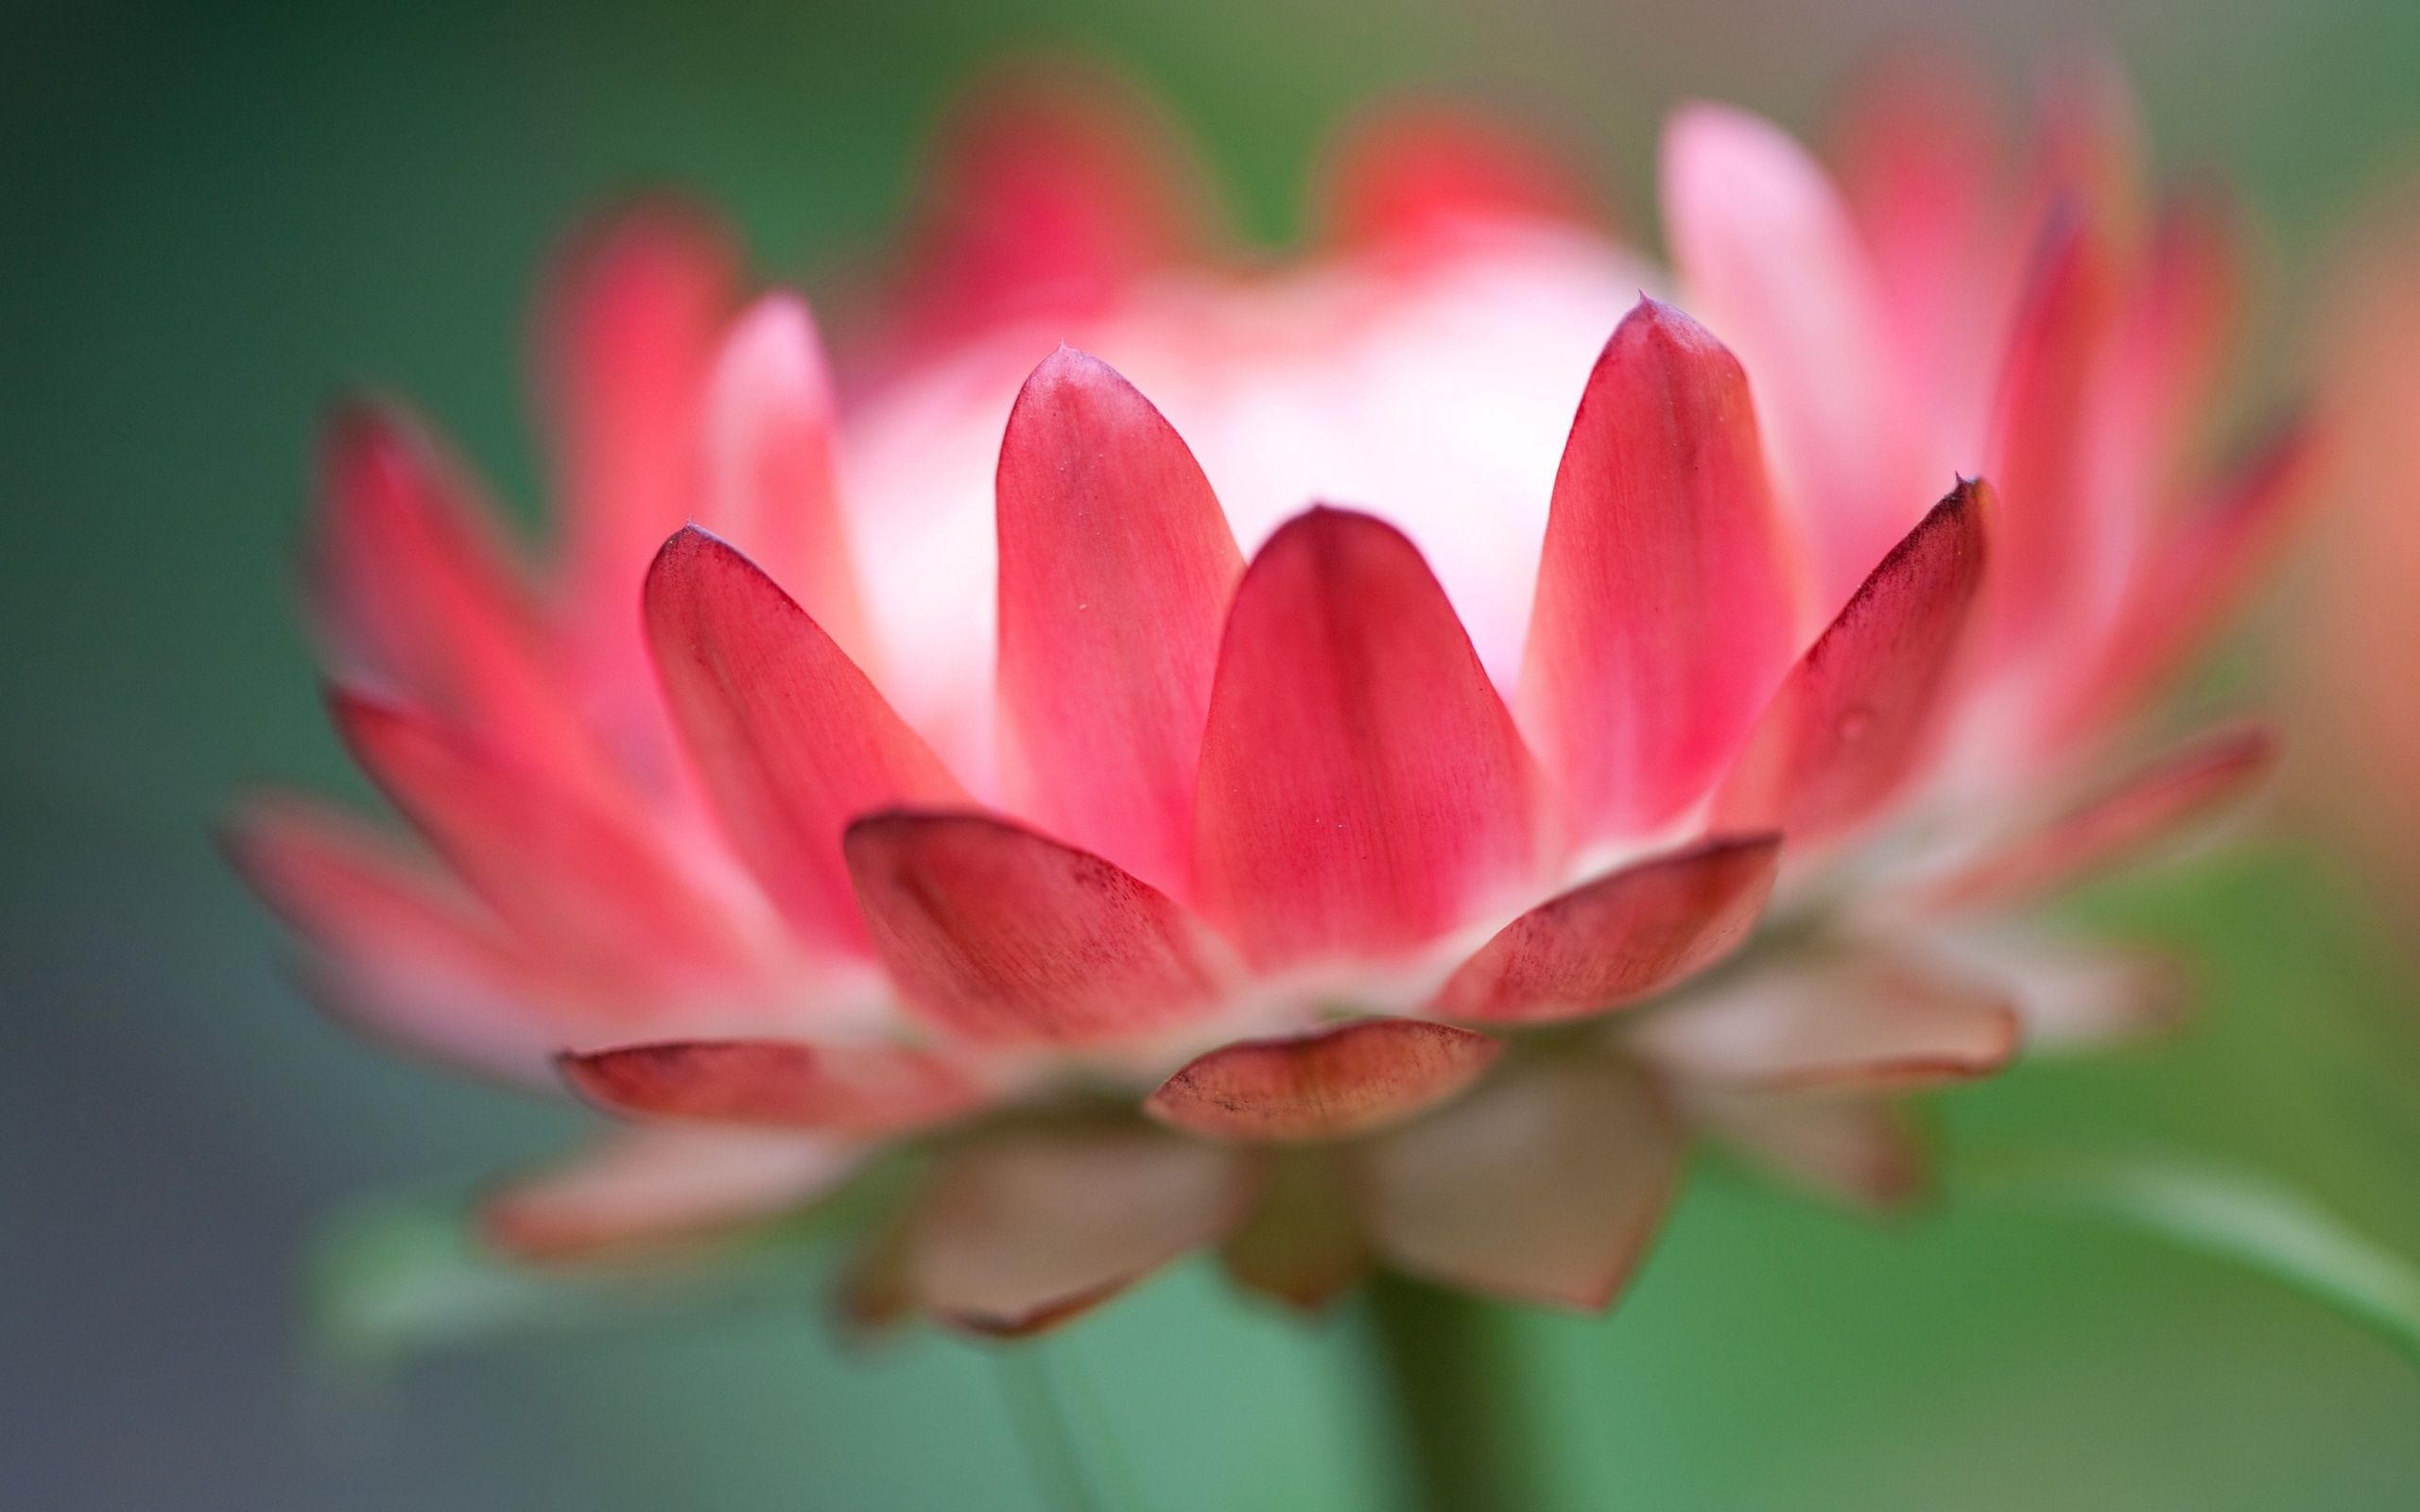 Most Pink Lotus Flower Desktop Hd Wallpaper Photos 3d High Quality ...